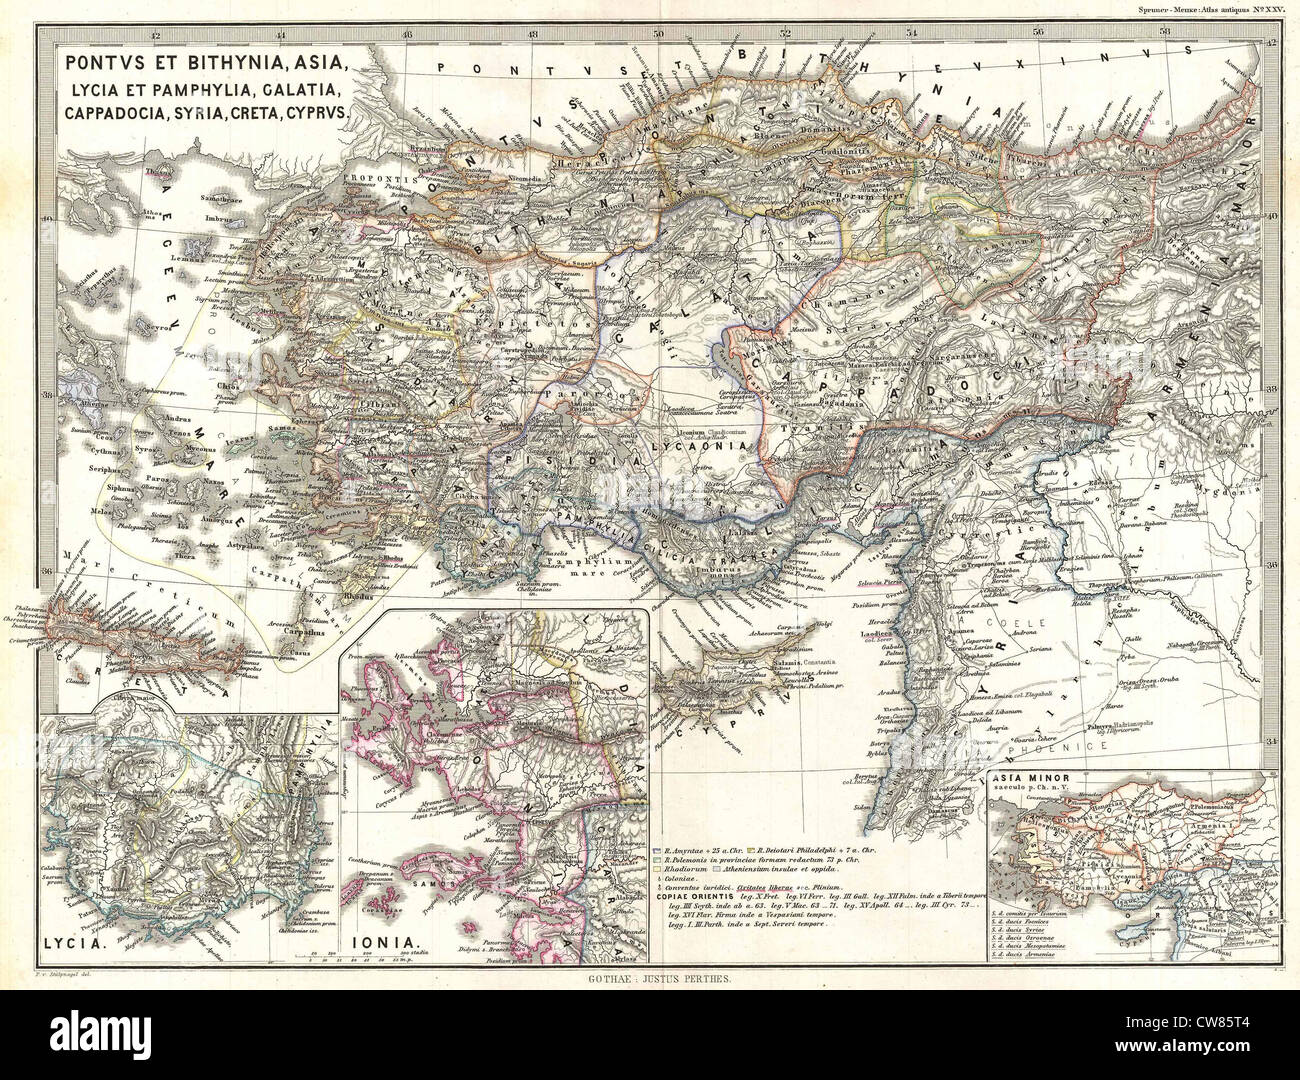 Map Of Asia Minor 60 Ad.Map Of Asia Stock Photos Map Of Asia Stock Images Alamy